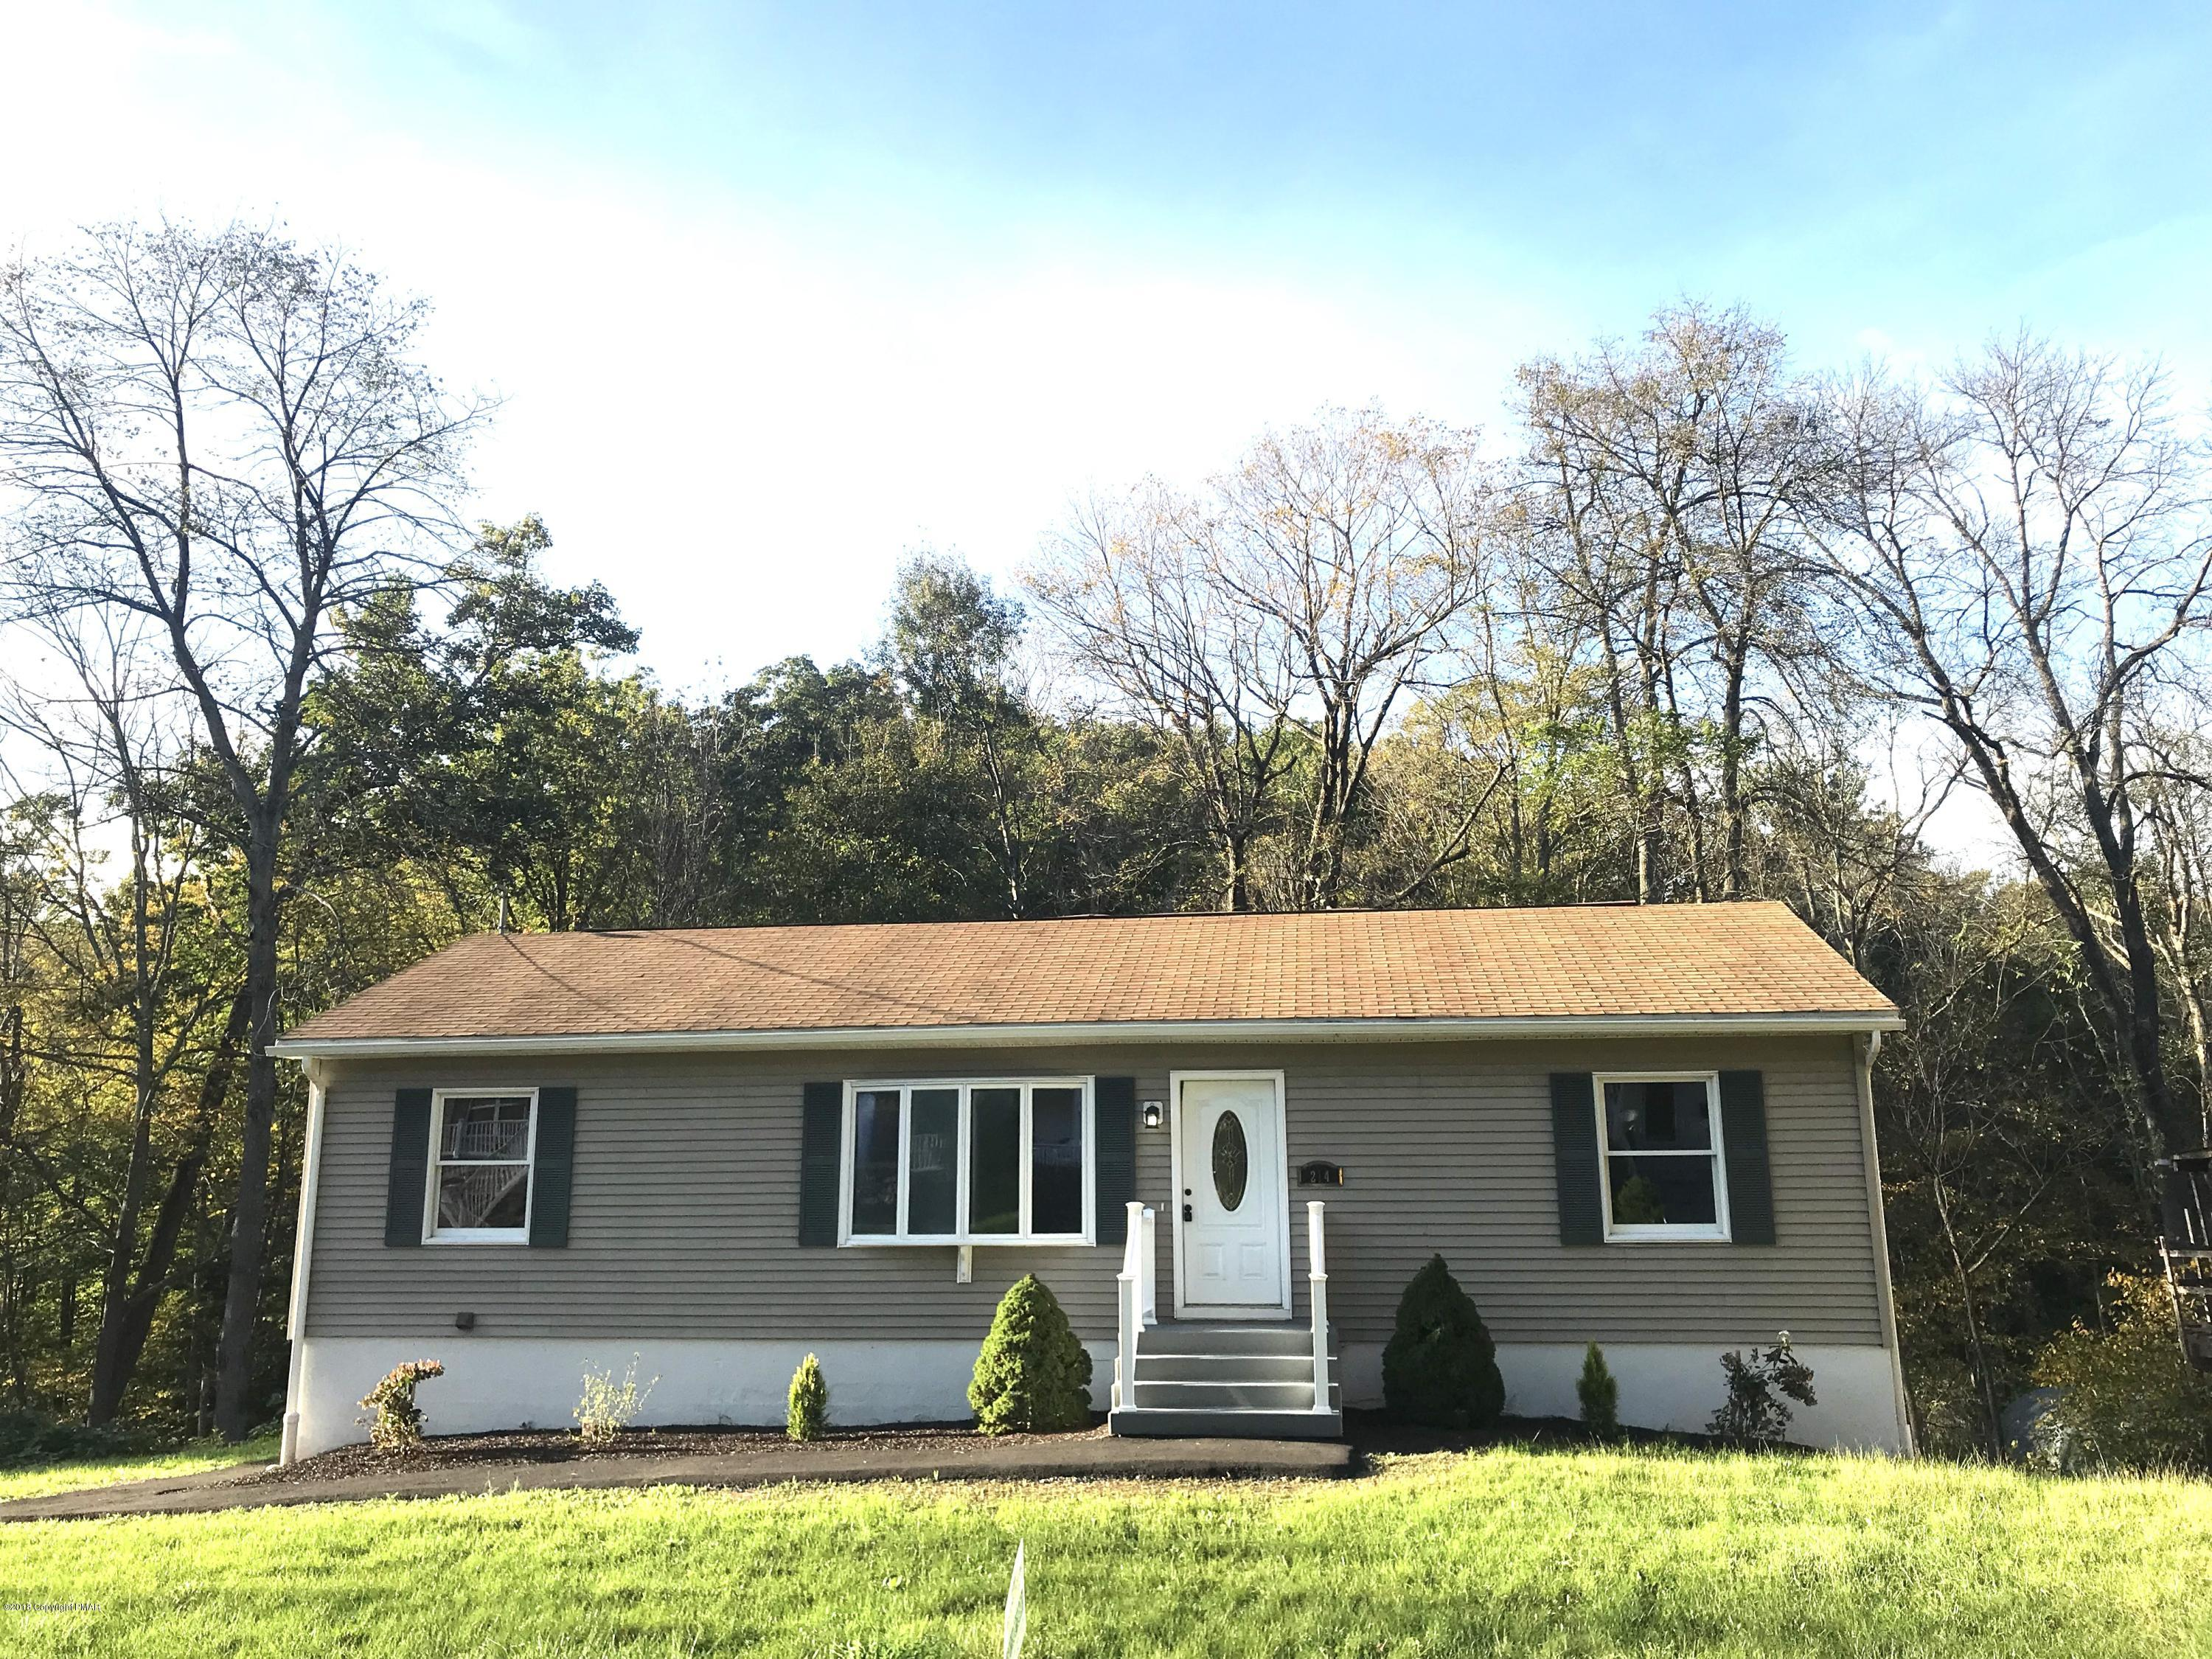 214 Cherry Valley Road, Stroudsburg, PA 18360